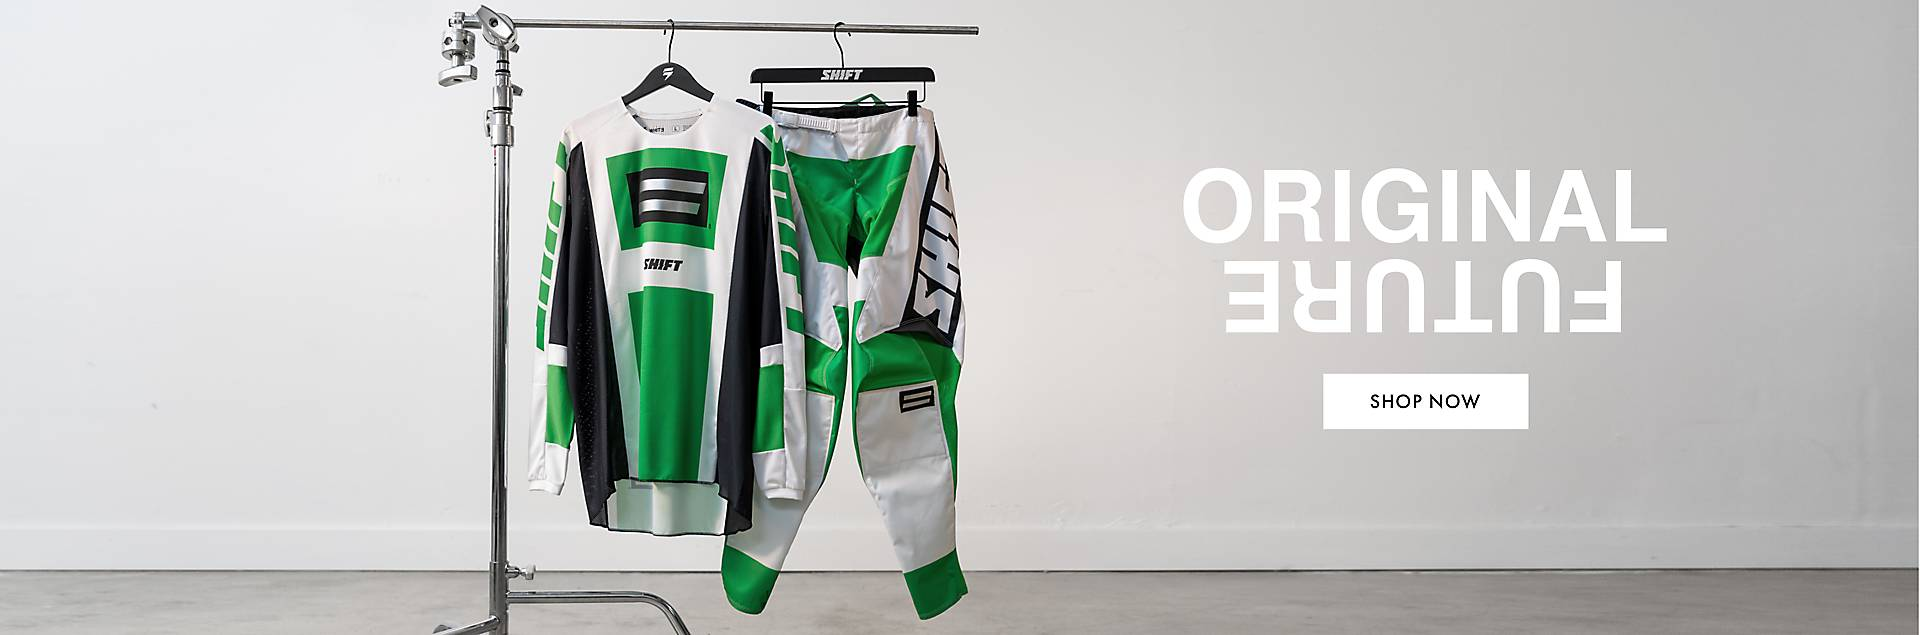 ShiftMX - Moto Gear for Bold & Fearless - Official ShiftMX com